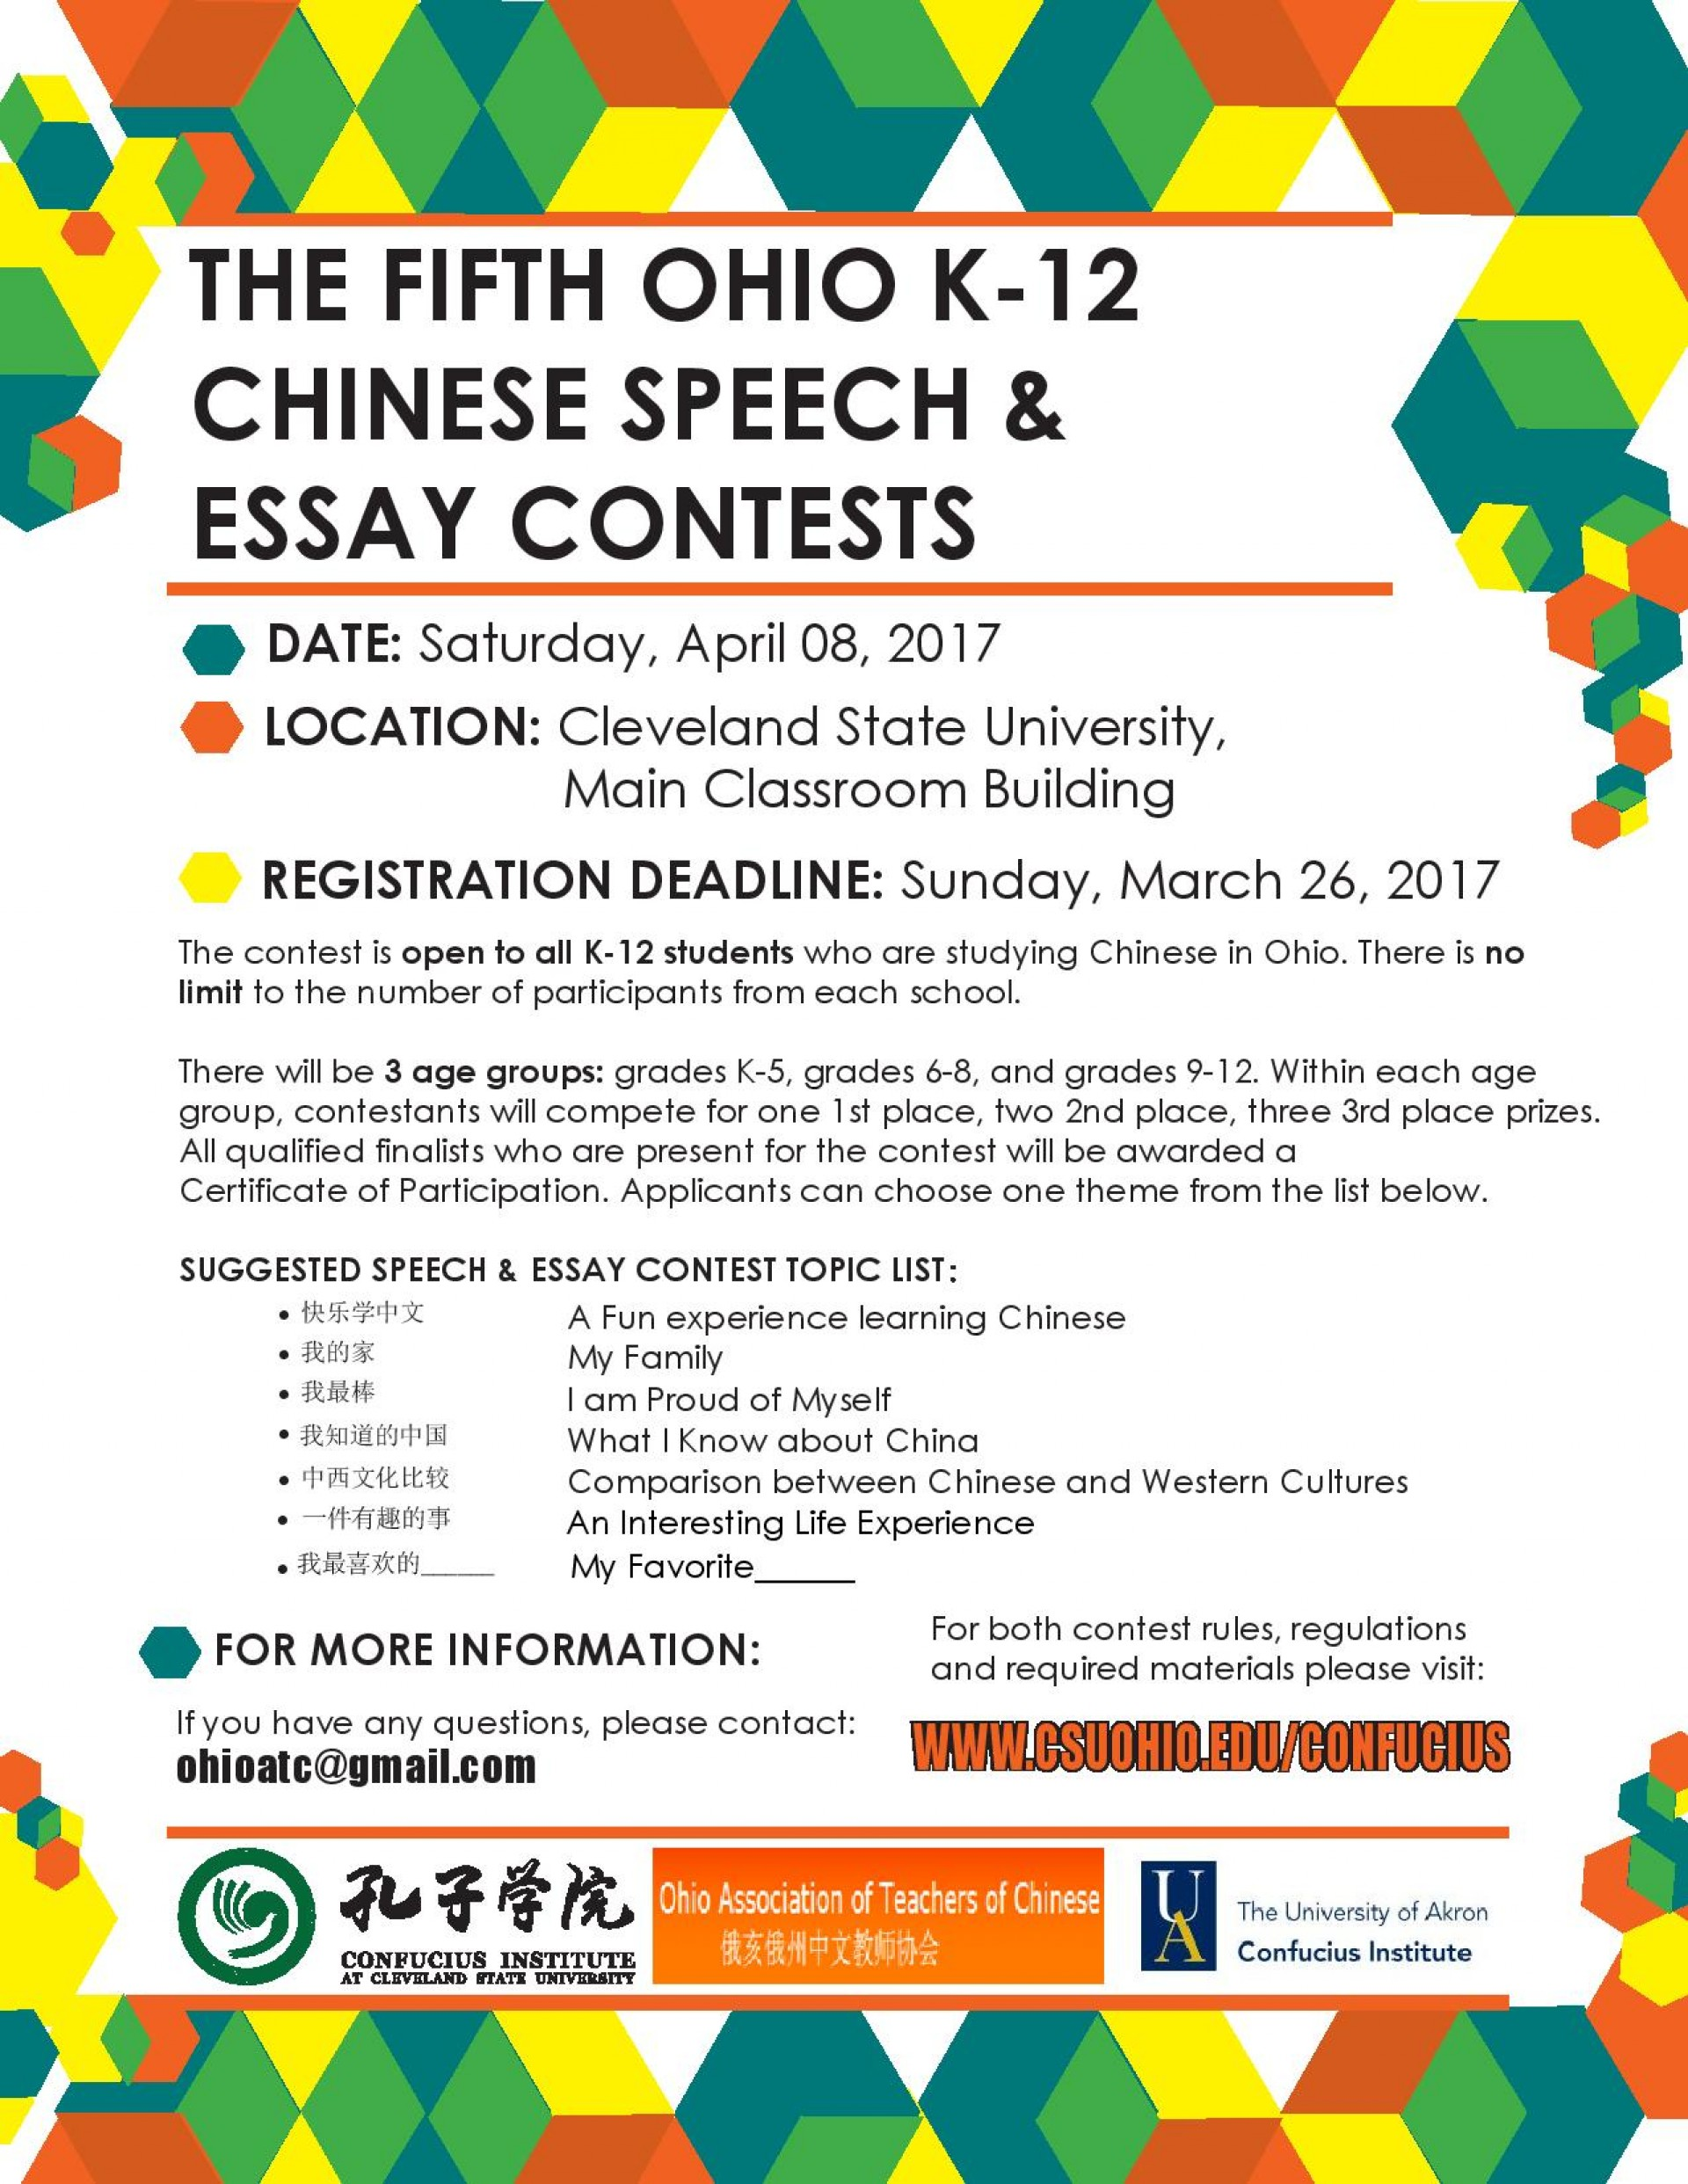 009 Essay Example Contest Confucius The Ohio K Chinese Speech Contests College Wr Writing For High School Students Student Staggering 2017 Online Competition India Optimist International 1920